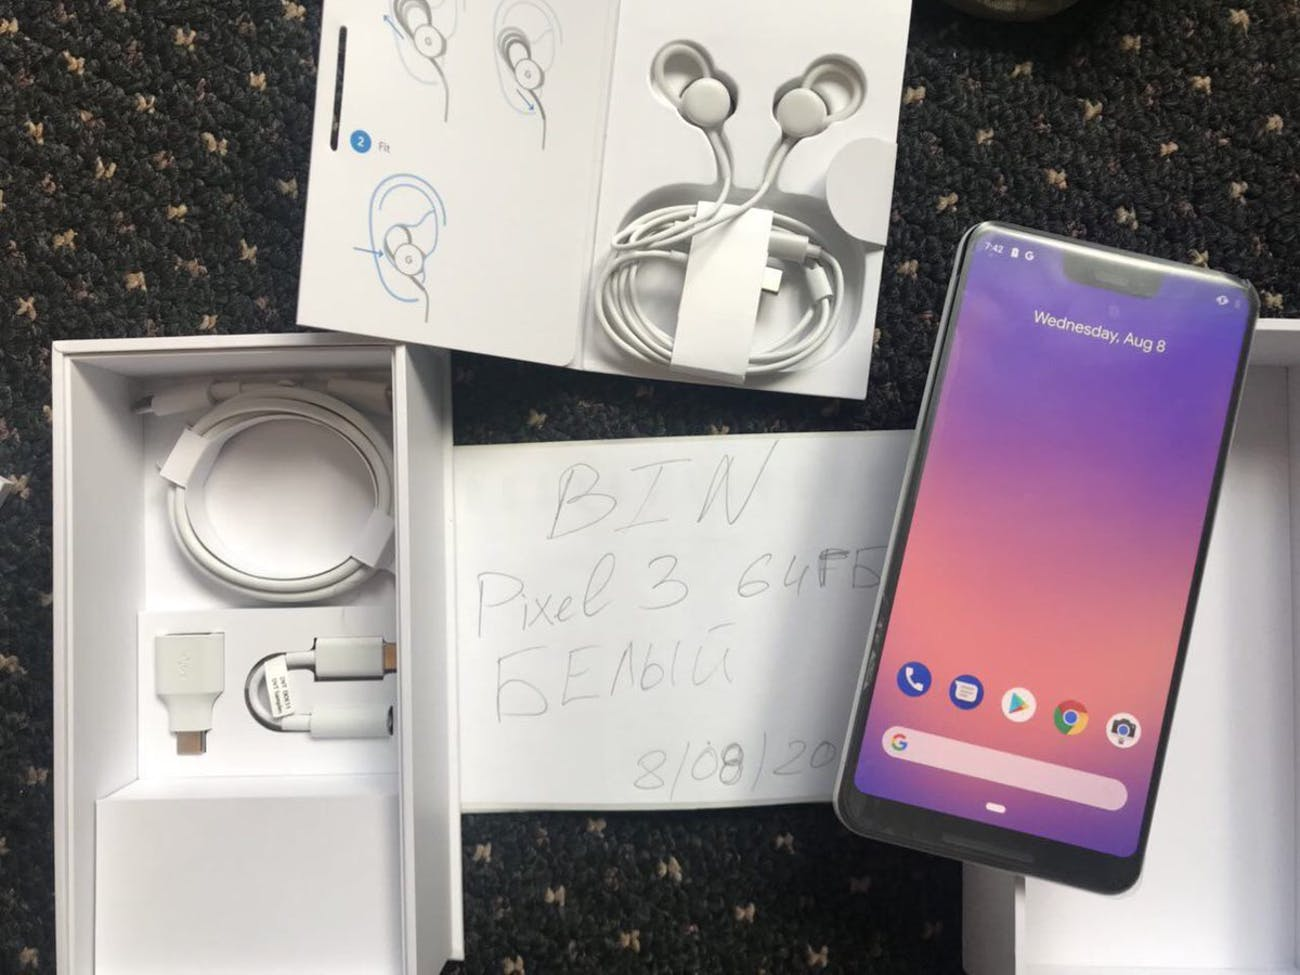 Google Pixel 3 XL: Leaked Unboxing Shows What Will Come With